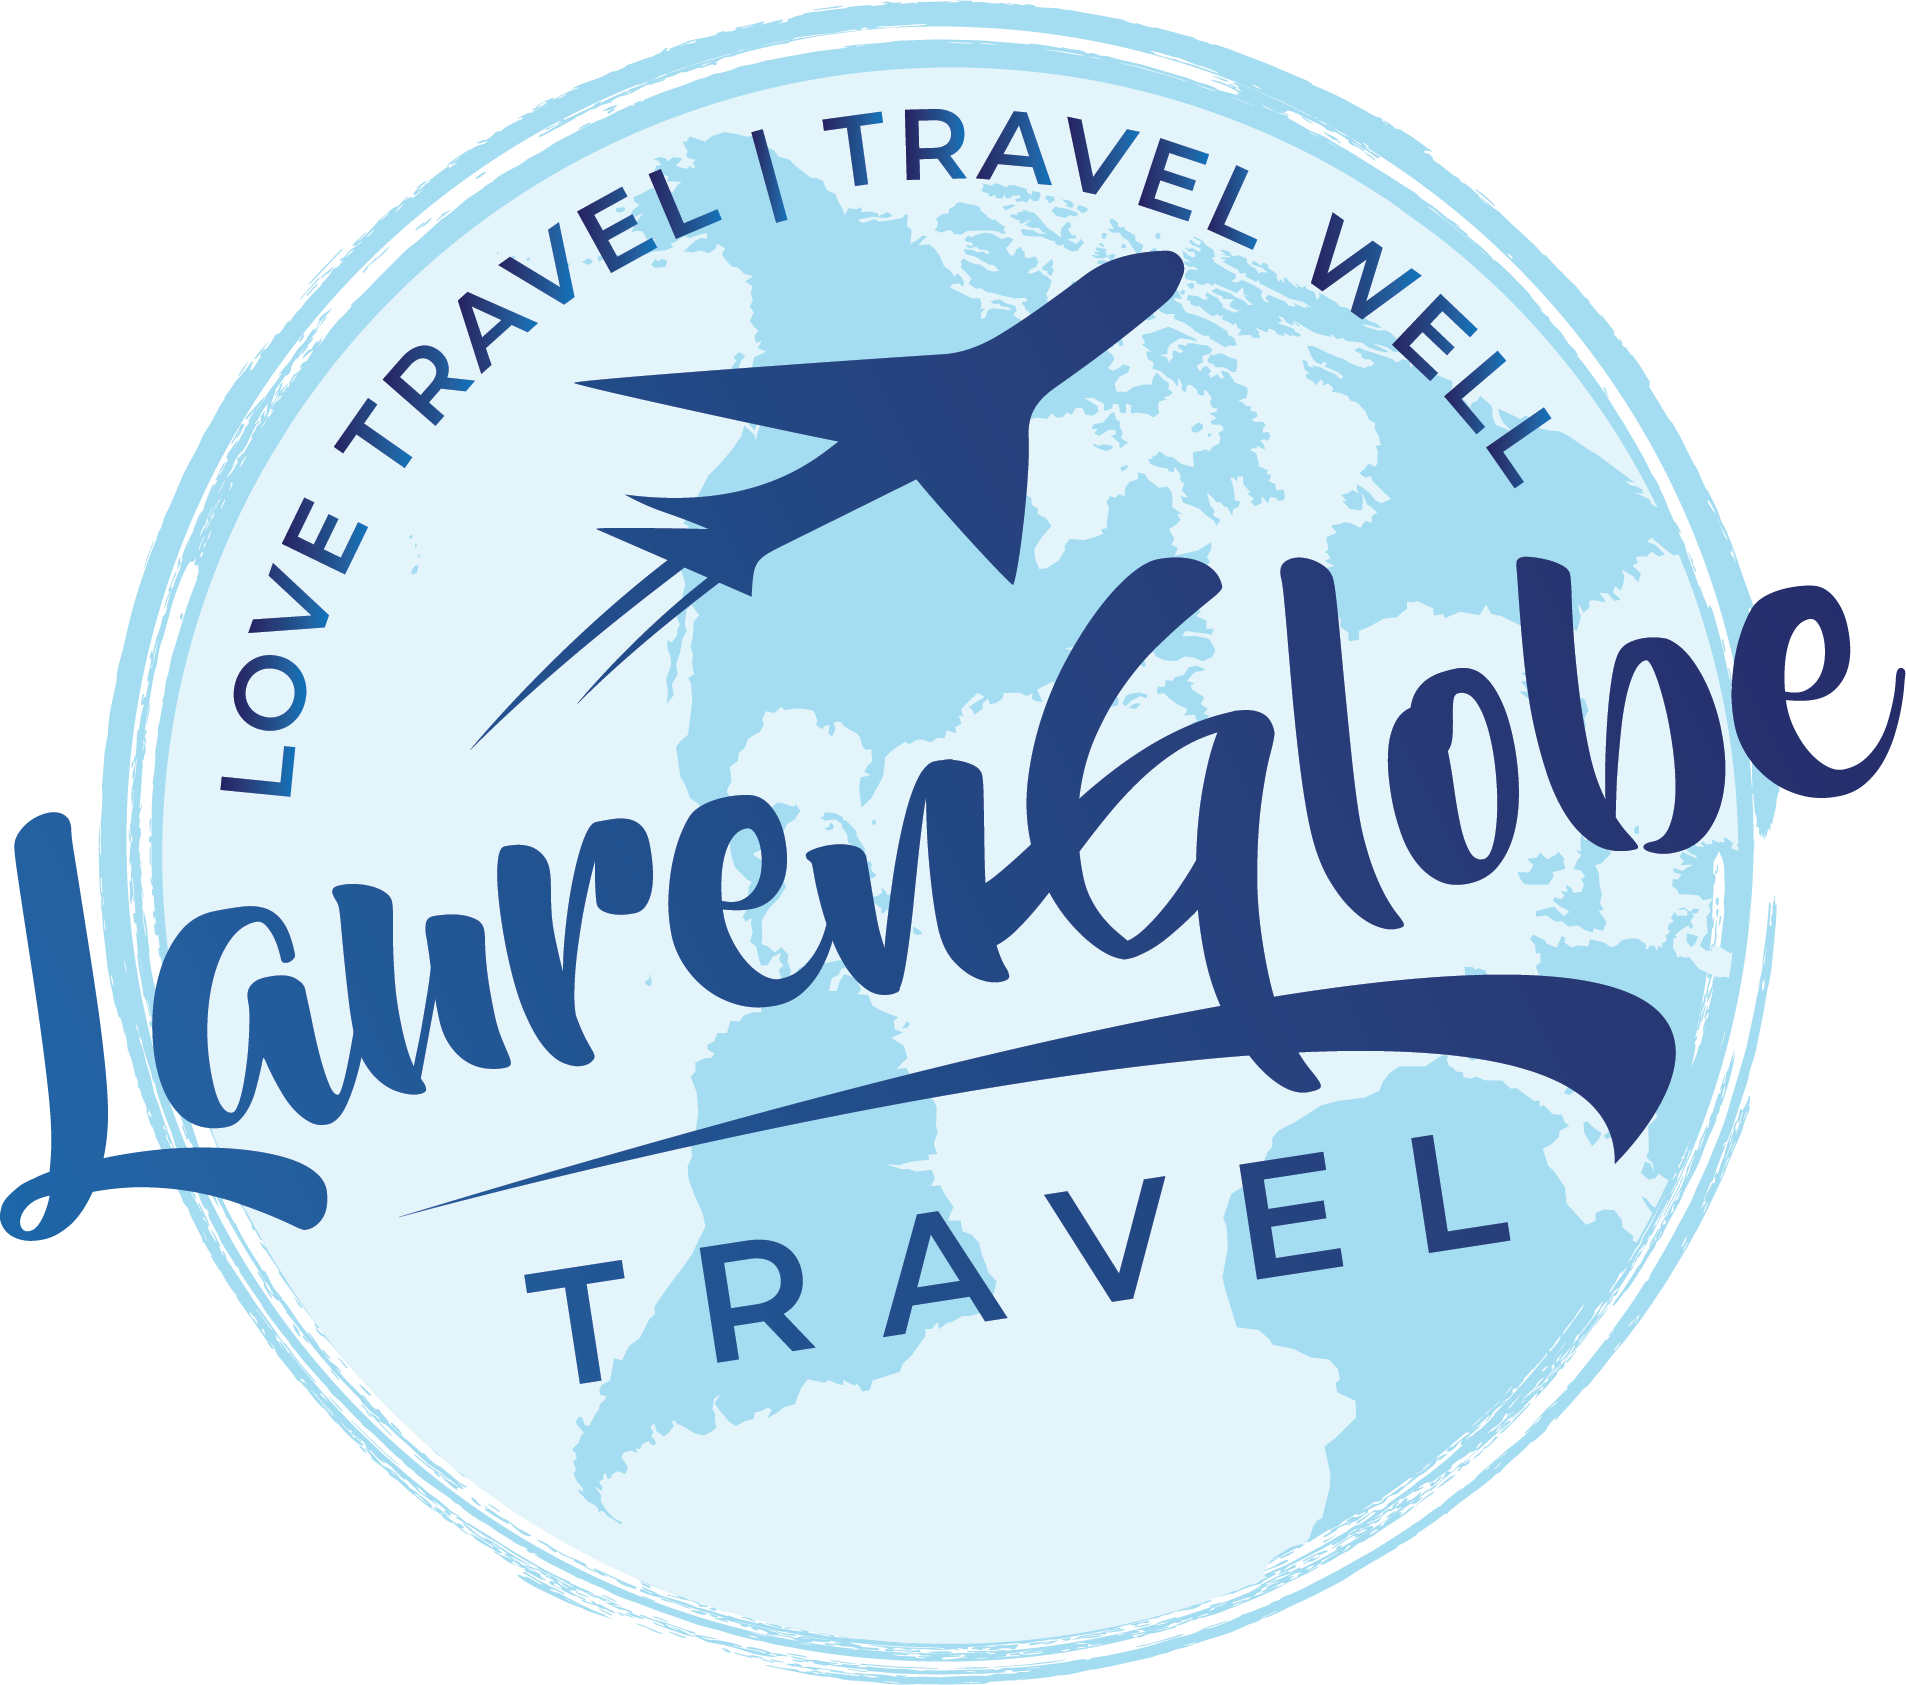 LaurenGlobe Travel